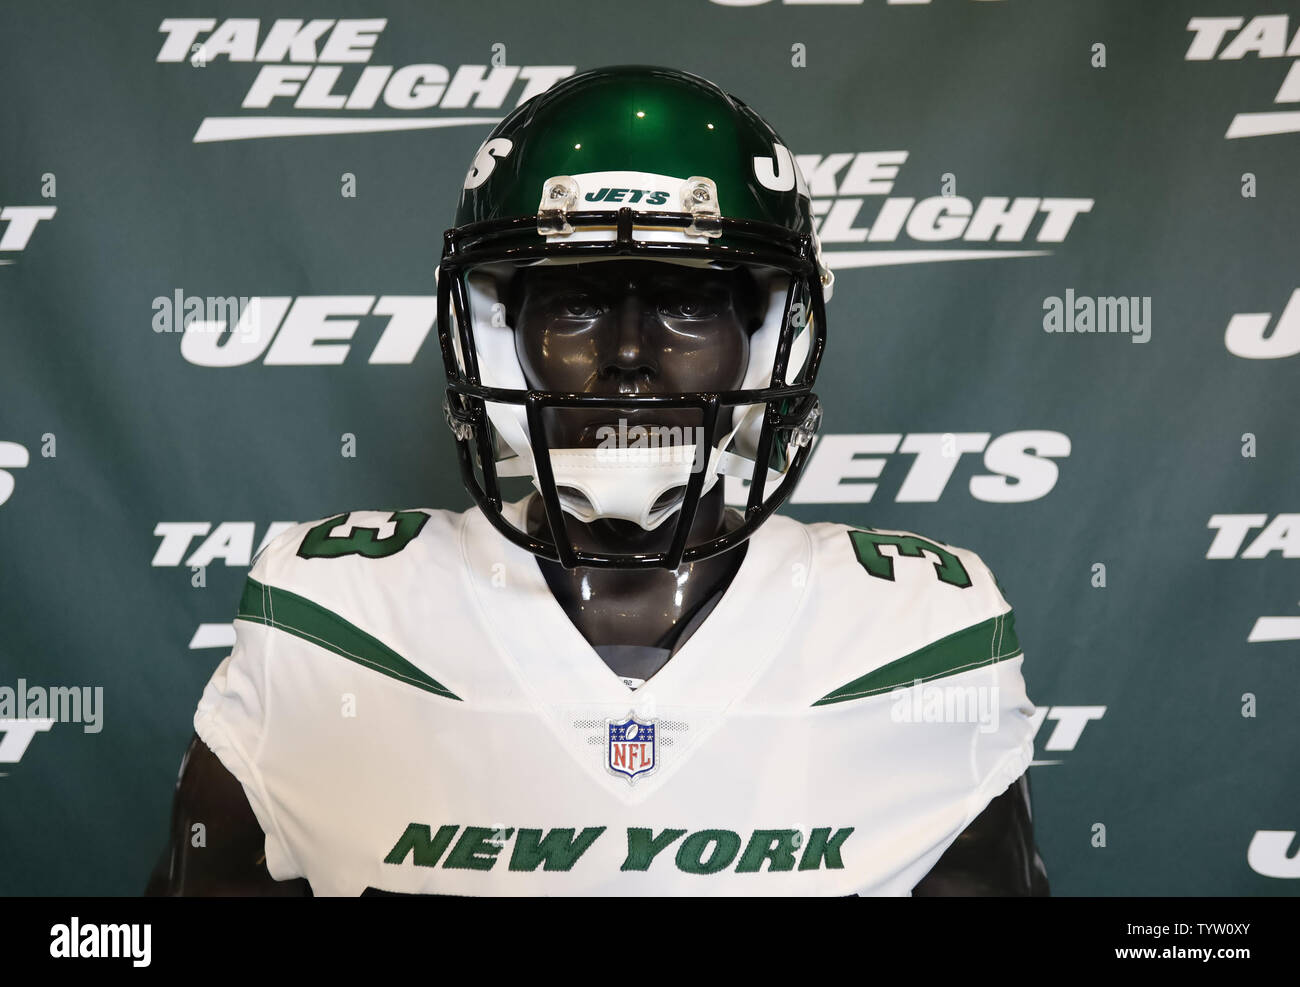 official photos d55f5 ad47b New York Jets new NFL football uniforms are on display when ...